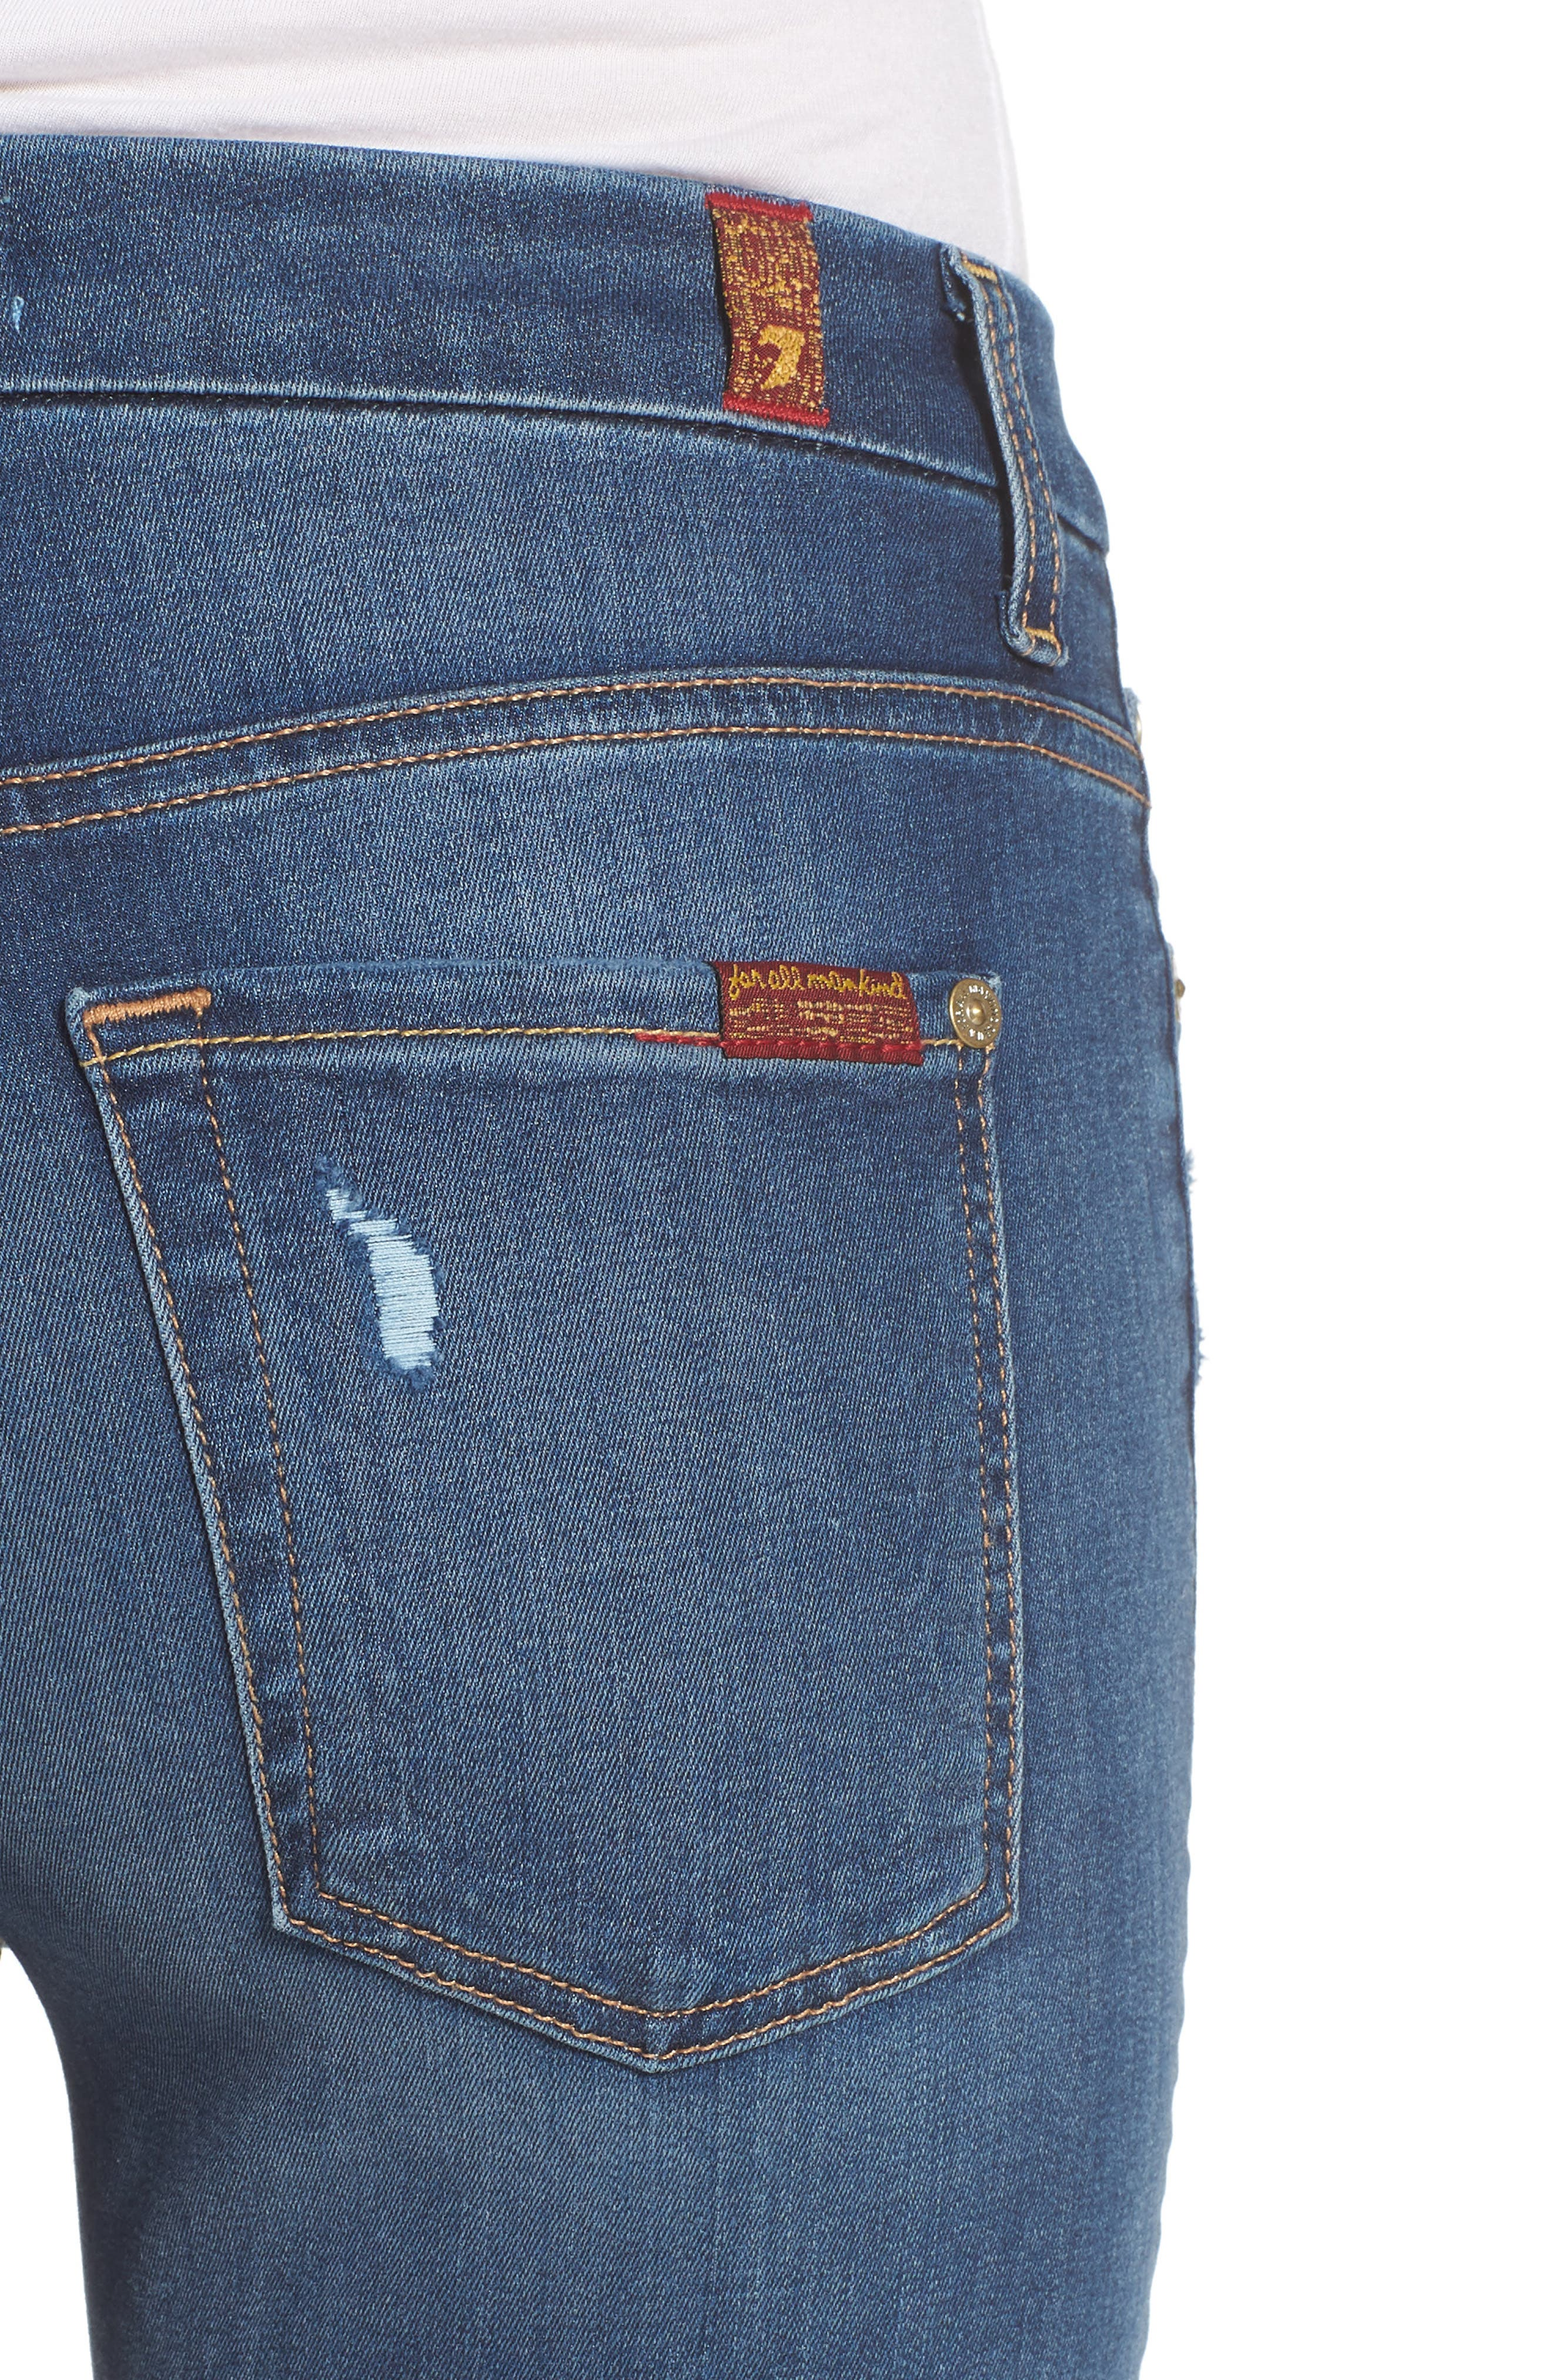 'b(air) - The Ankle' Skinny Jeans,                             Alternate thumbnail 18, color,